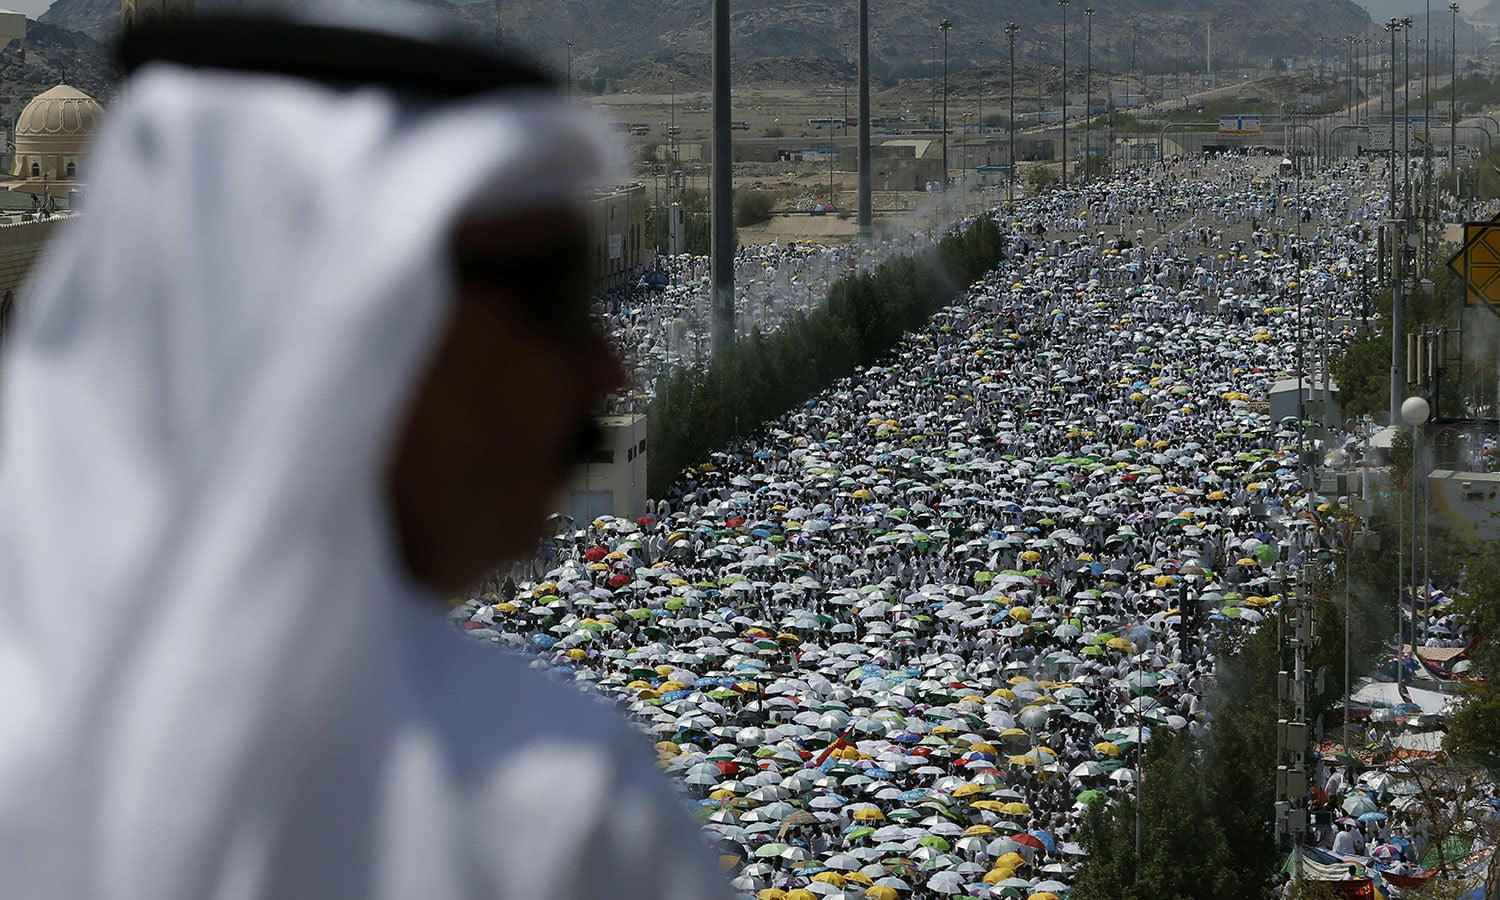 Pilgrims gather to perform noon and afternoon prayers at Namira Mosque in Mount Arafat, southeast of the Saudi holy city of Makkah. — AFP